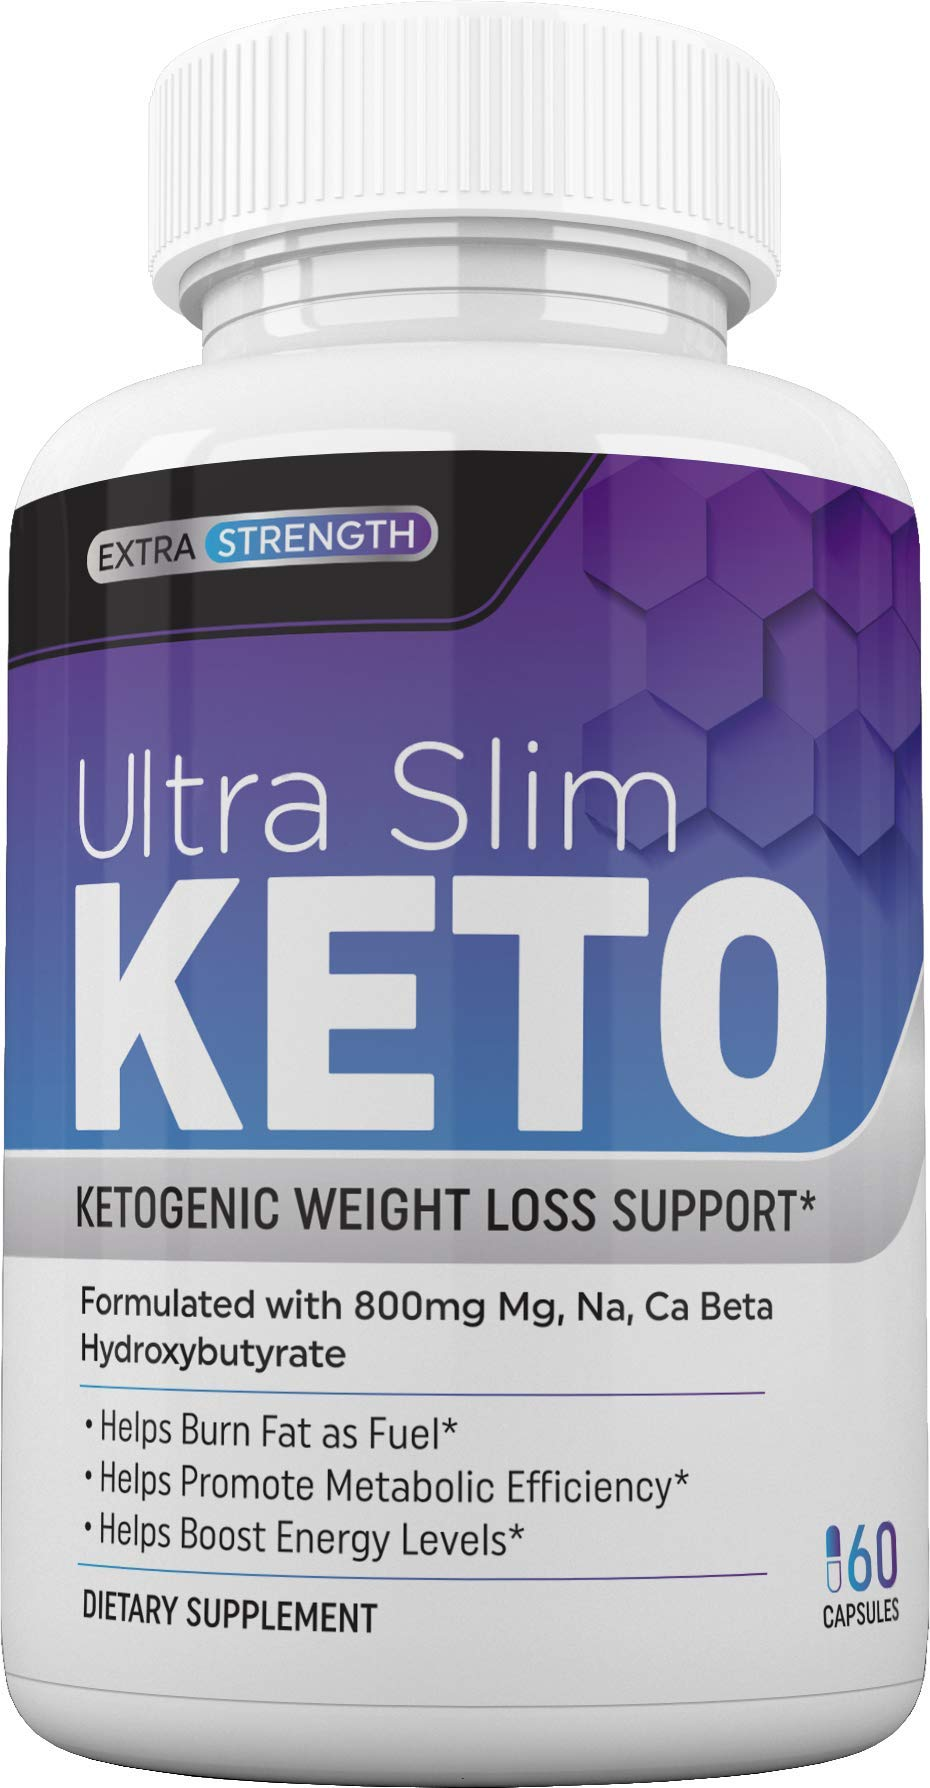 Ultra Slim Keto Pills - Weight Loss, Burn Fat Fast ,Boost Energy and Metabolism, - Best Keto Diet - 60 Capsules